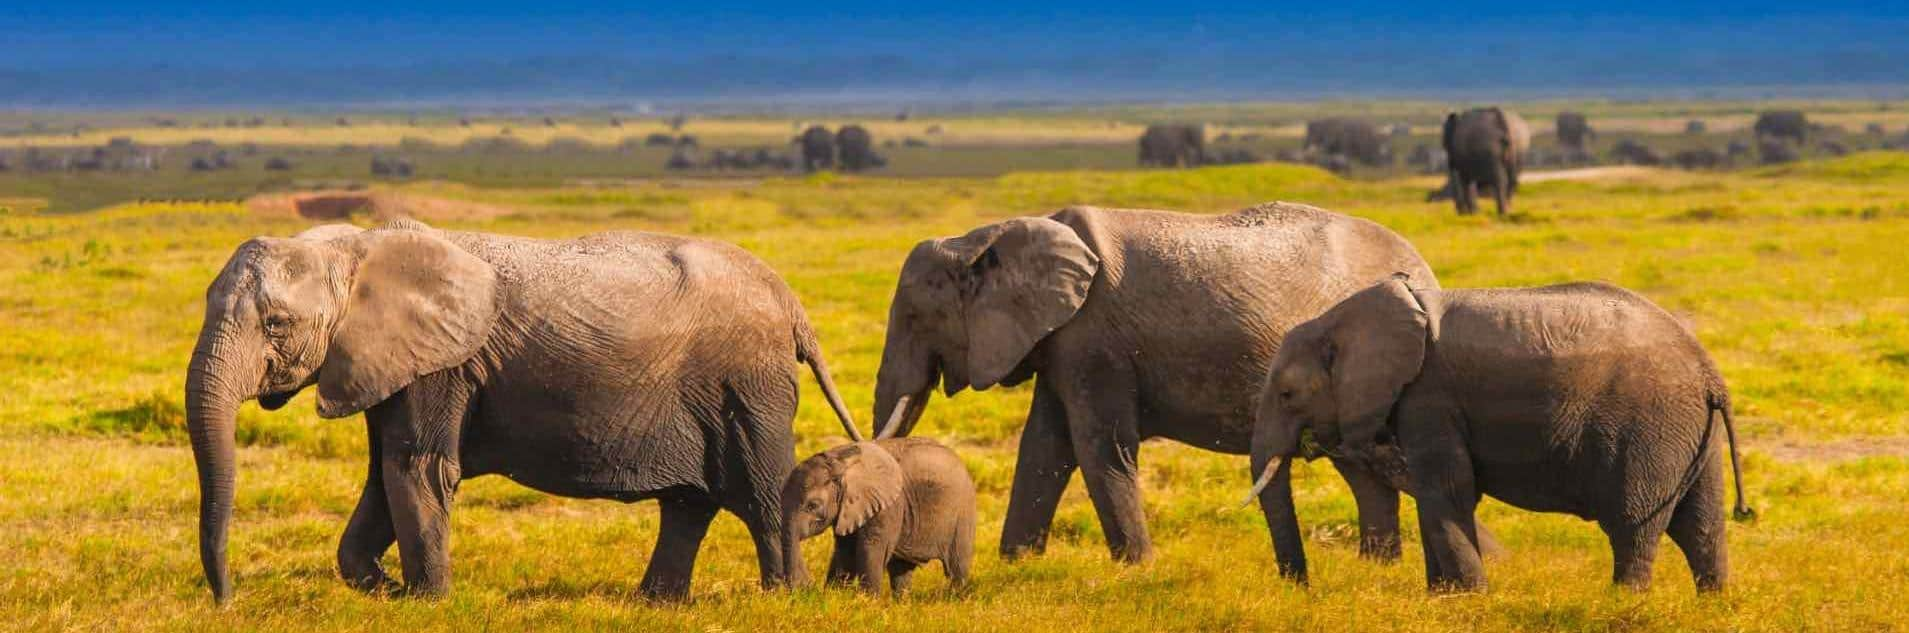 amboseli national park elephant herds in Kenya and Tanzania combined safari